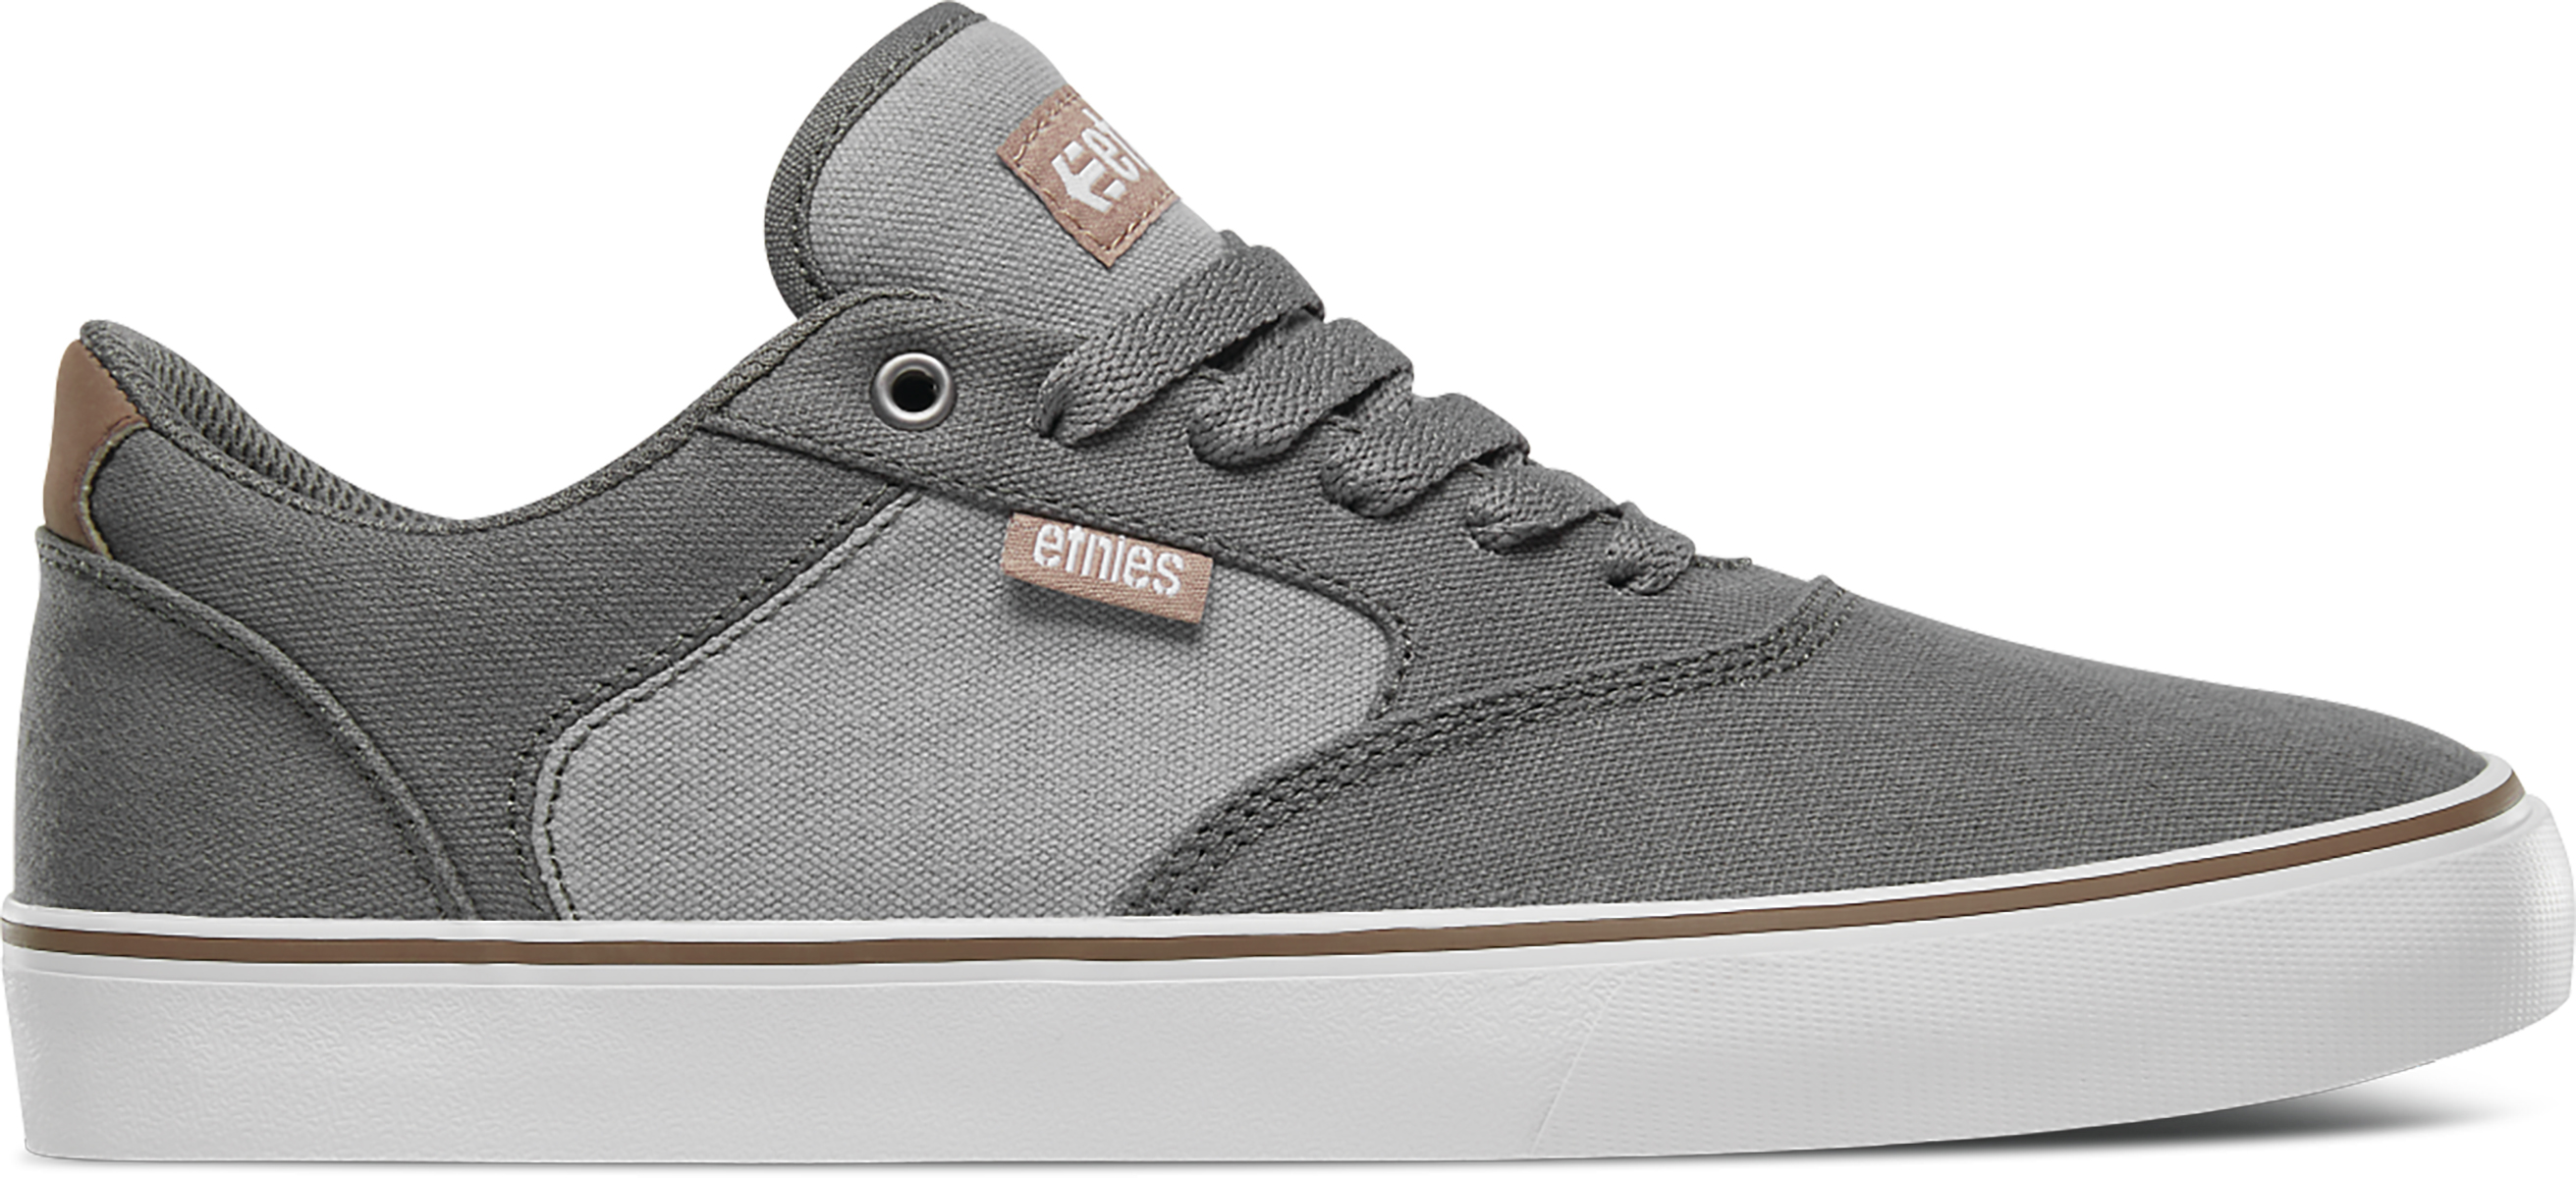 Etnies Blitz Shoe | Shoes and overlays